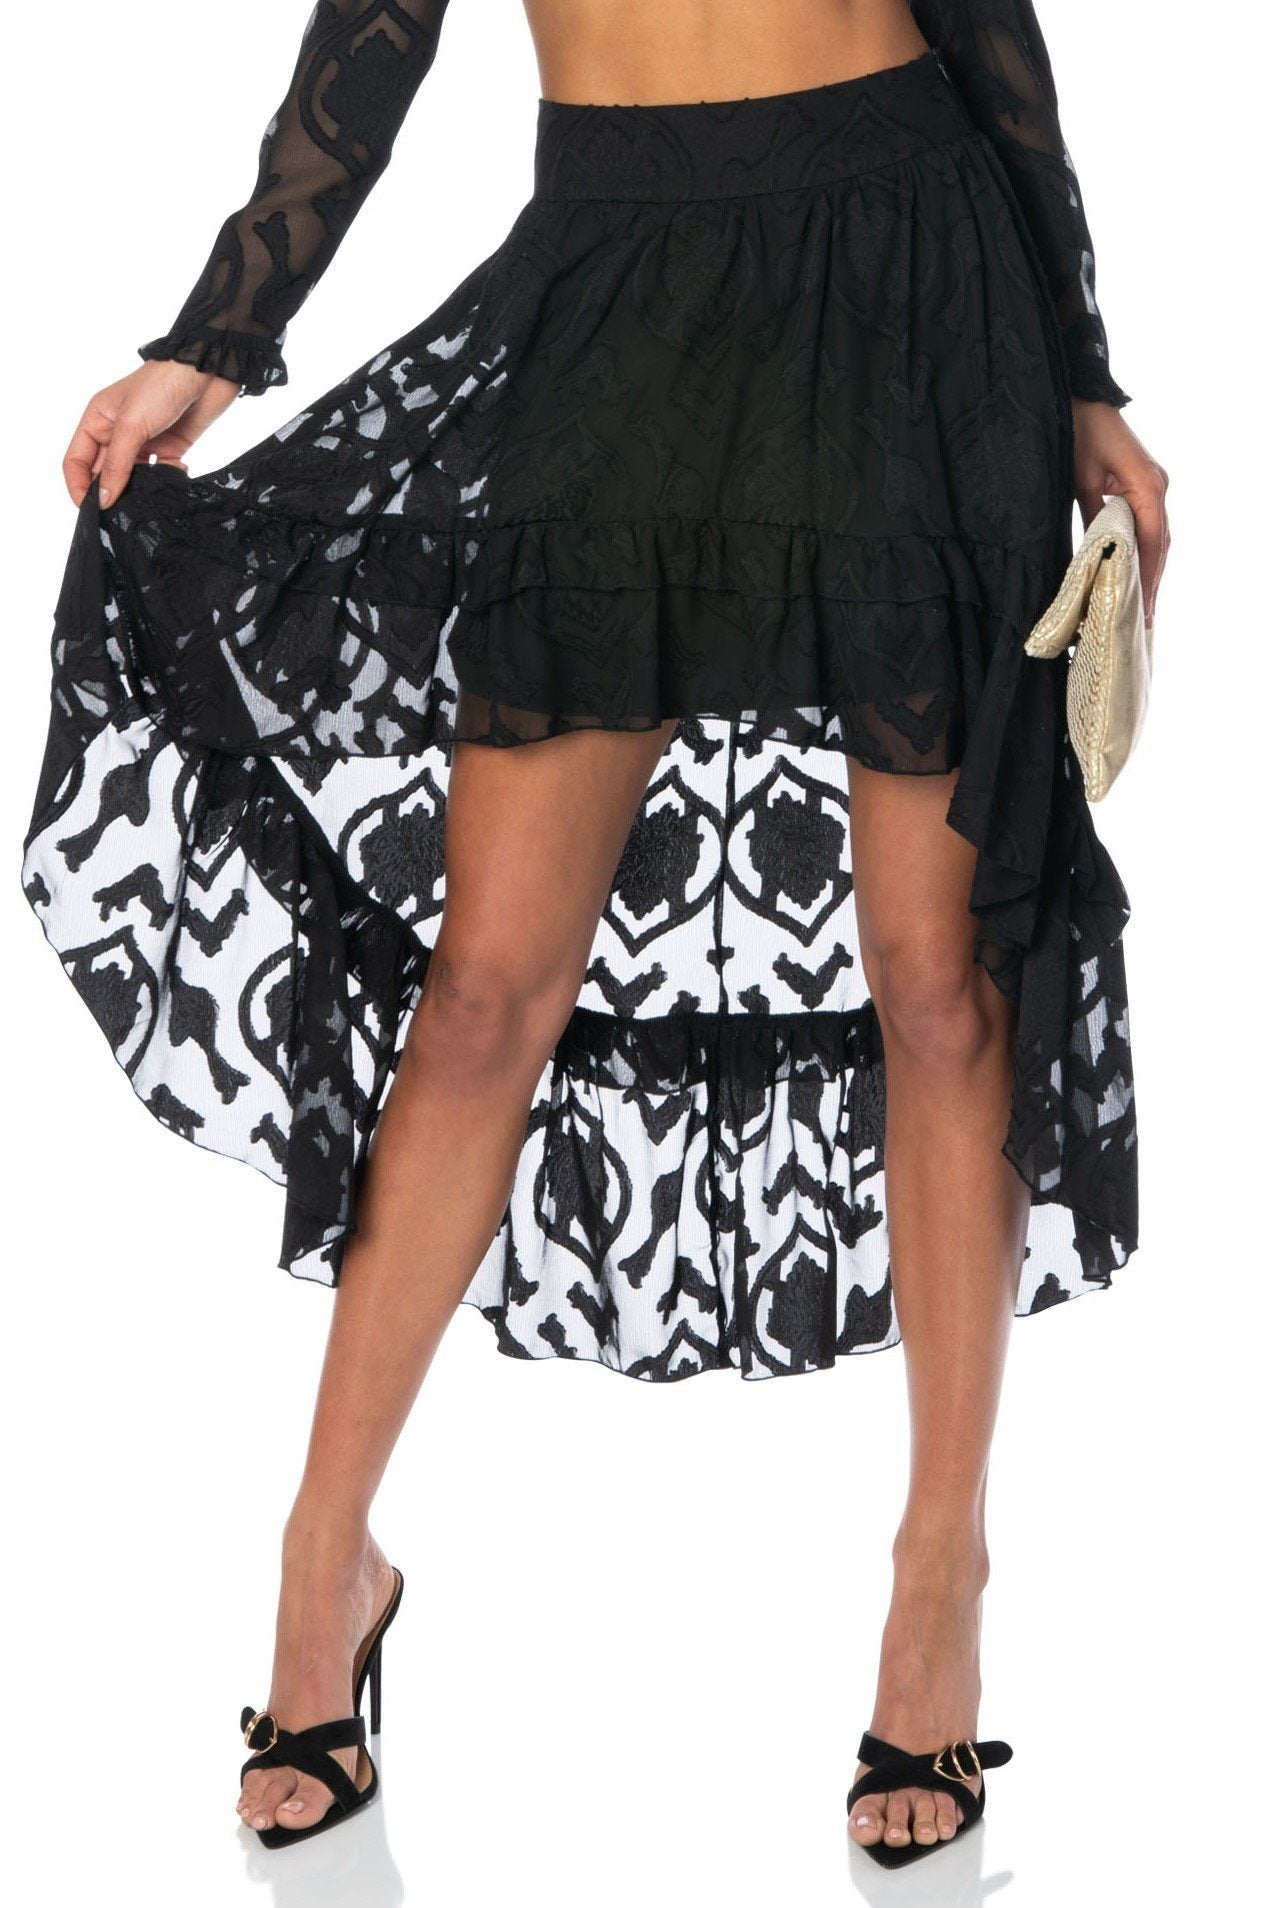 La Jolla Nights Black High-Low Skirt Bottoms HYPEACH BOUTIQUE